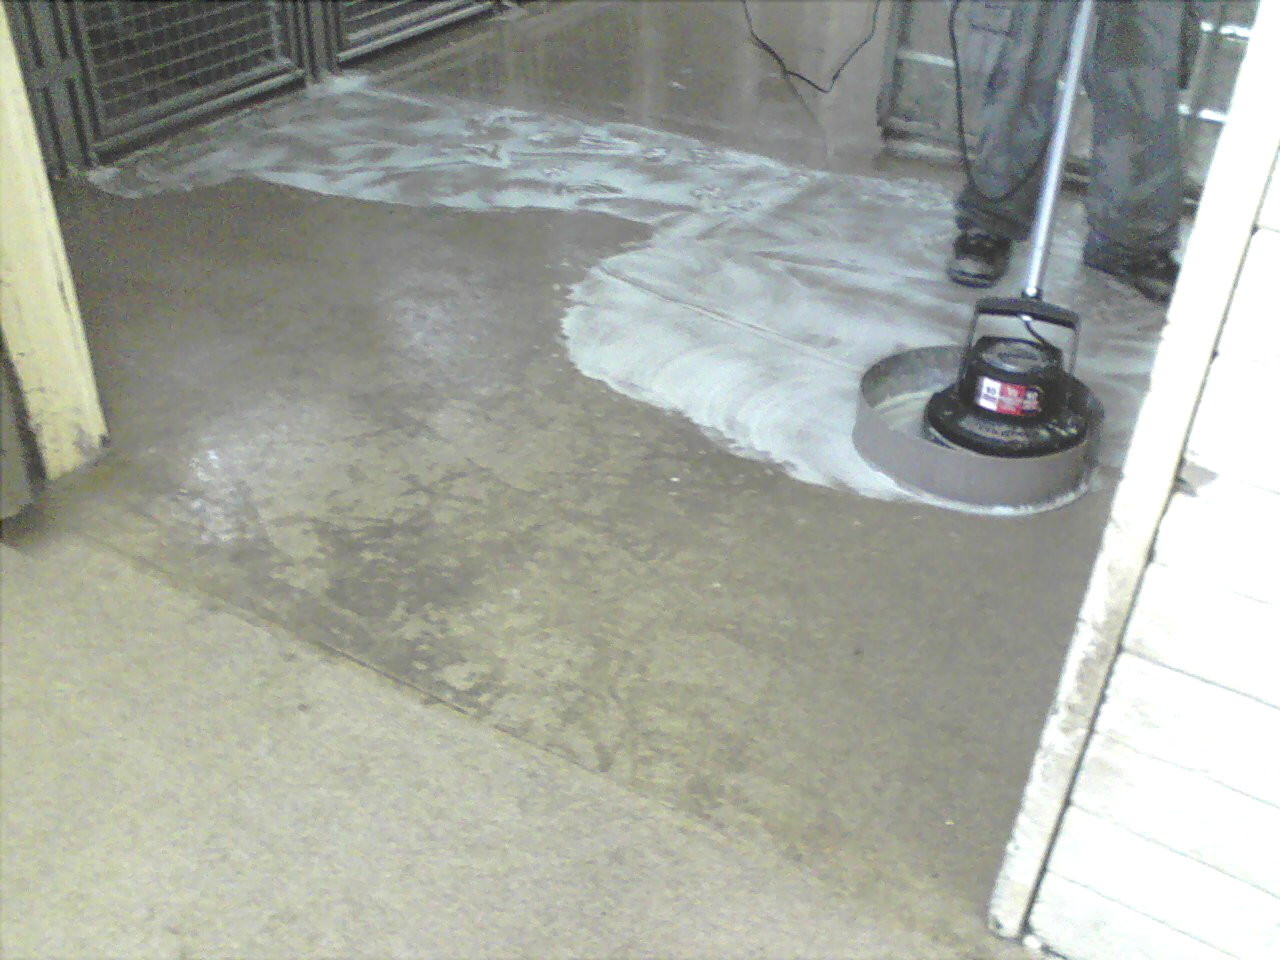 Kennel cleaner treating kennel floor with special flooring surface.